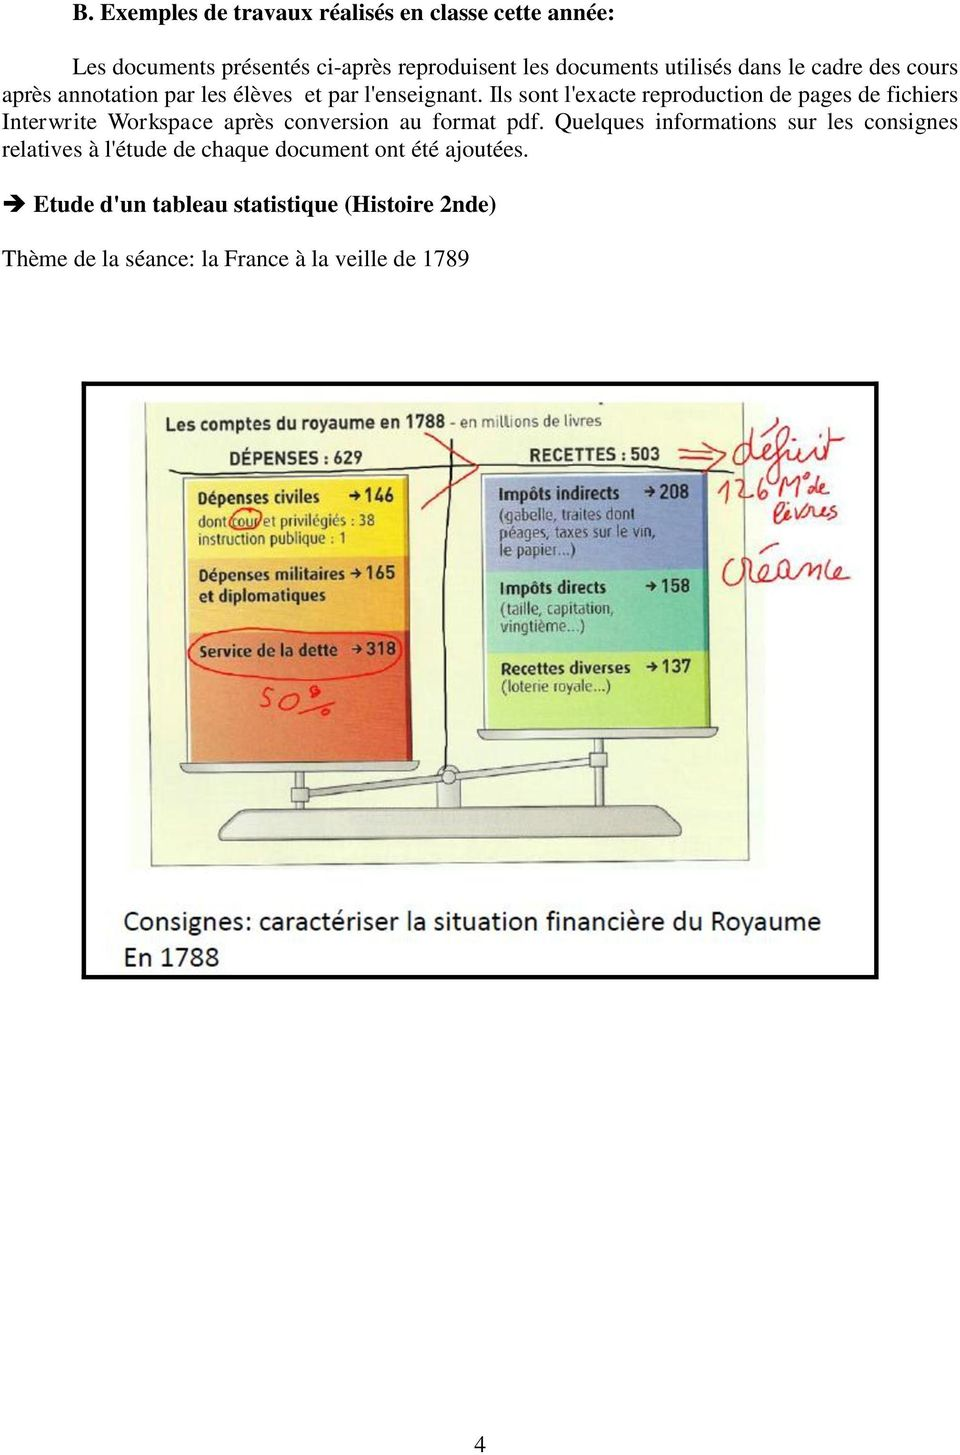 Ils sont l'exacte reproduction de pages de fichiers Interwrite Workspace après conversion au format pdf.